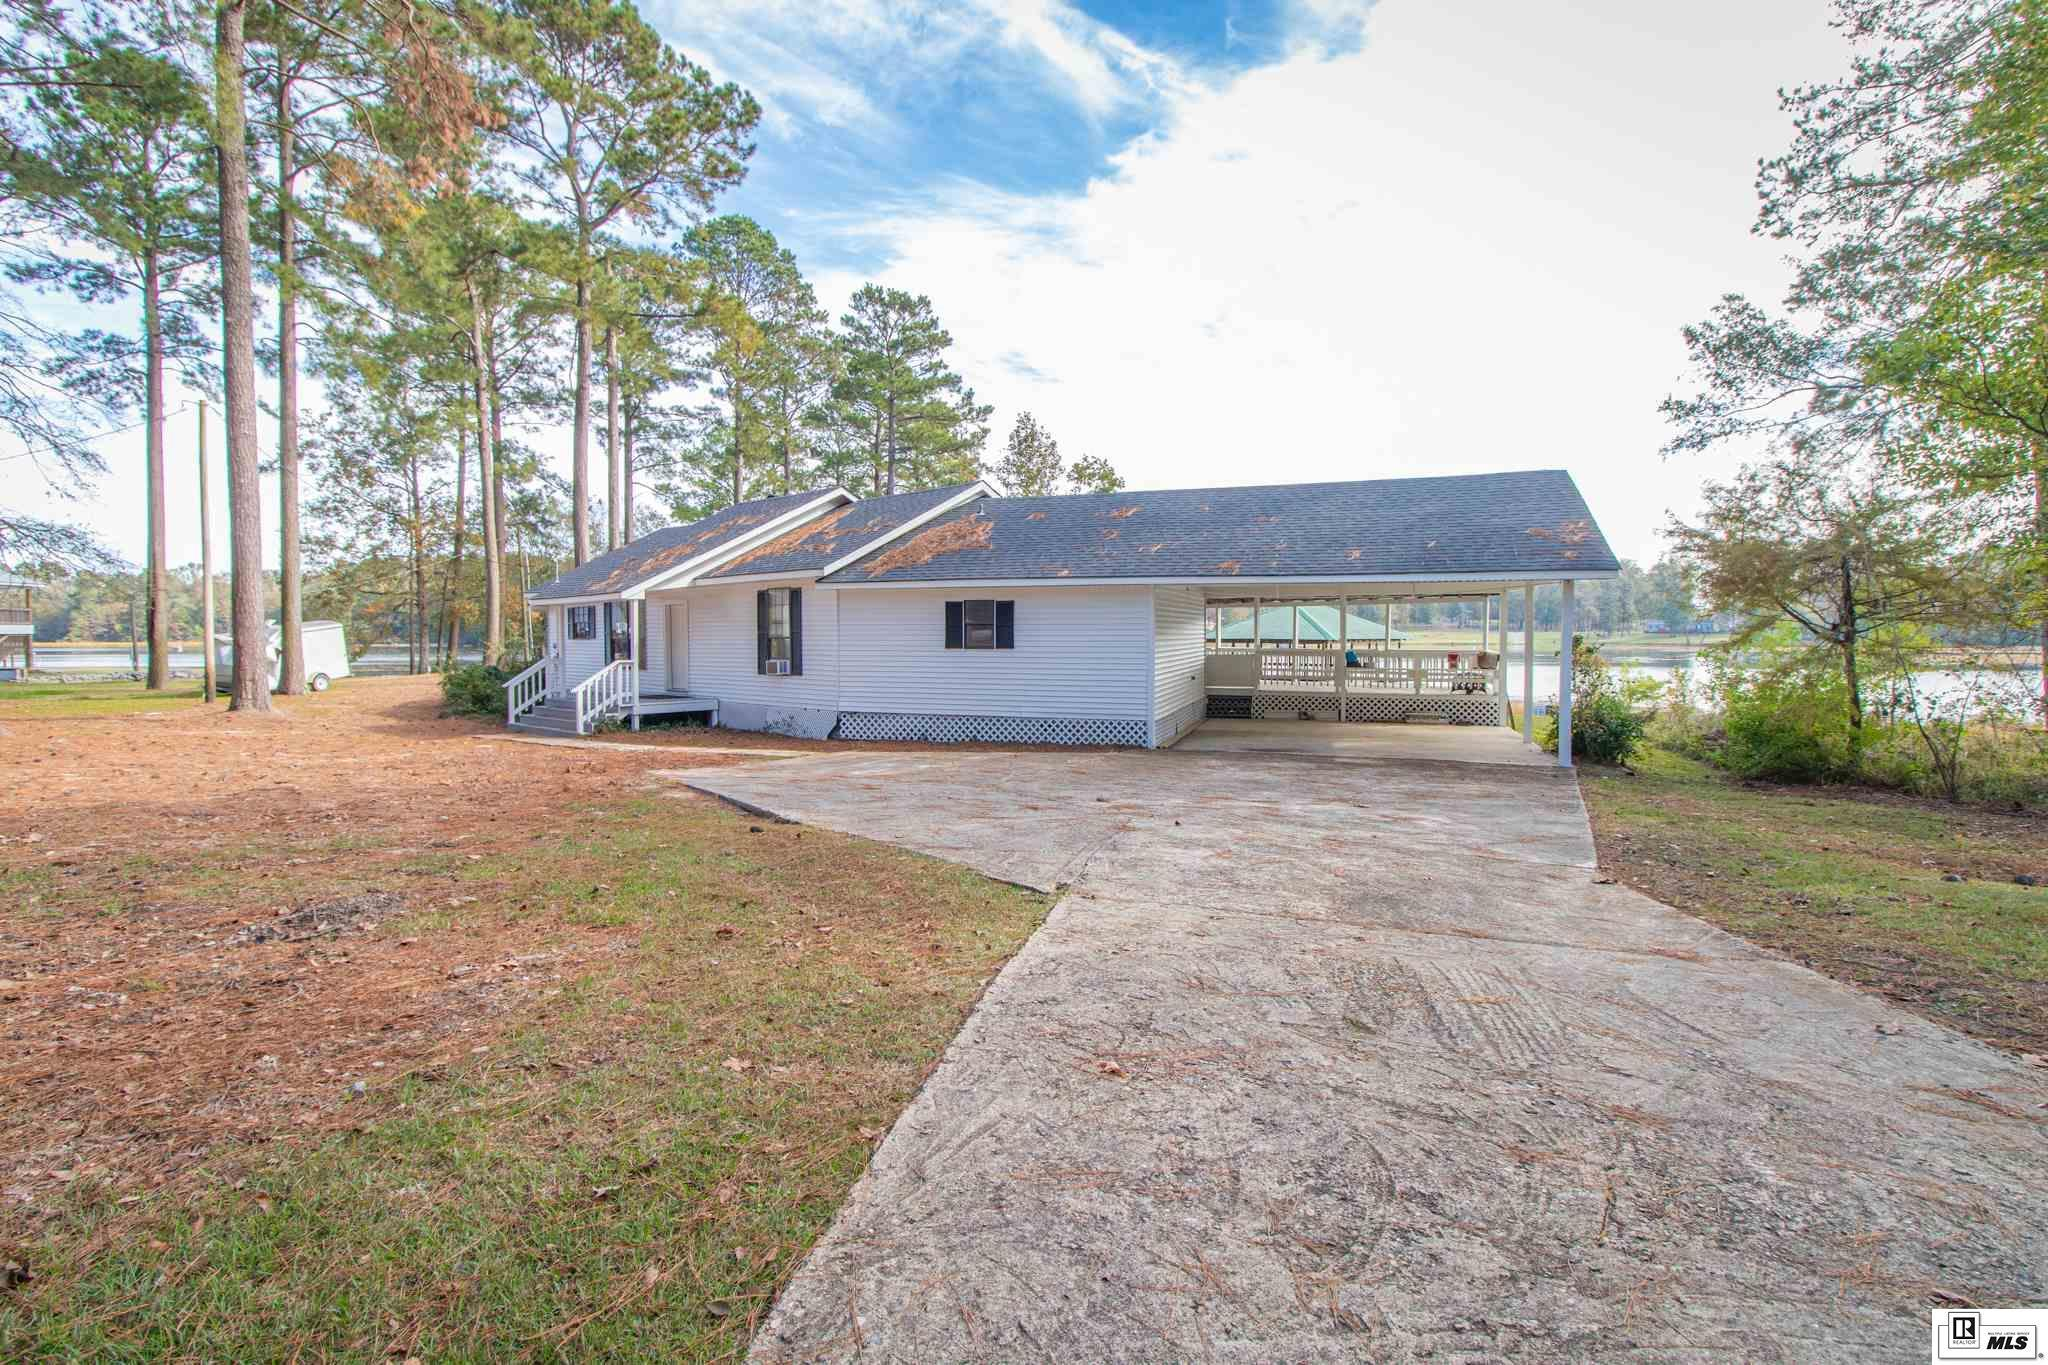 488 HAVEN LOOP, 401 Caney Lake Area